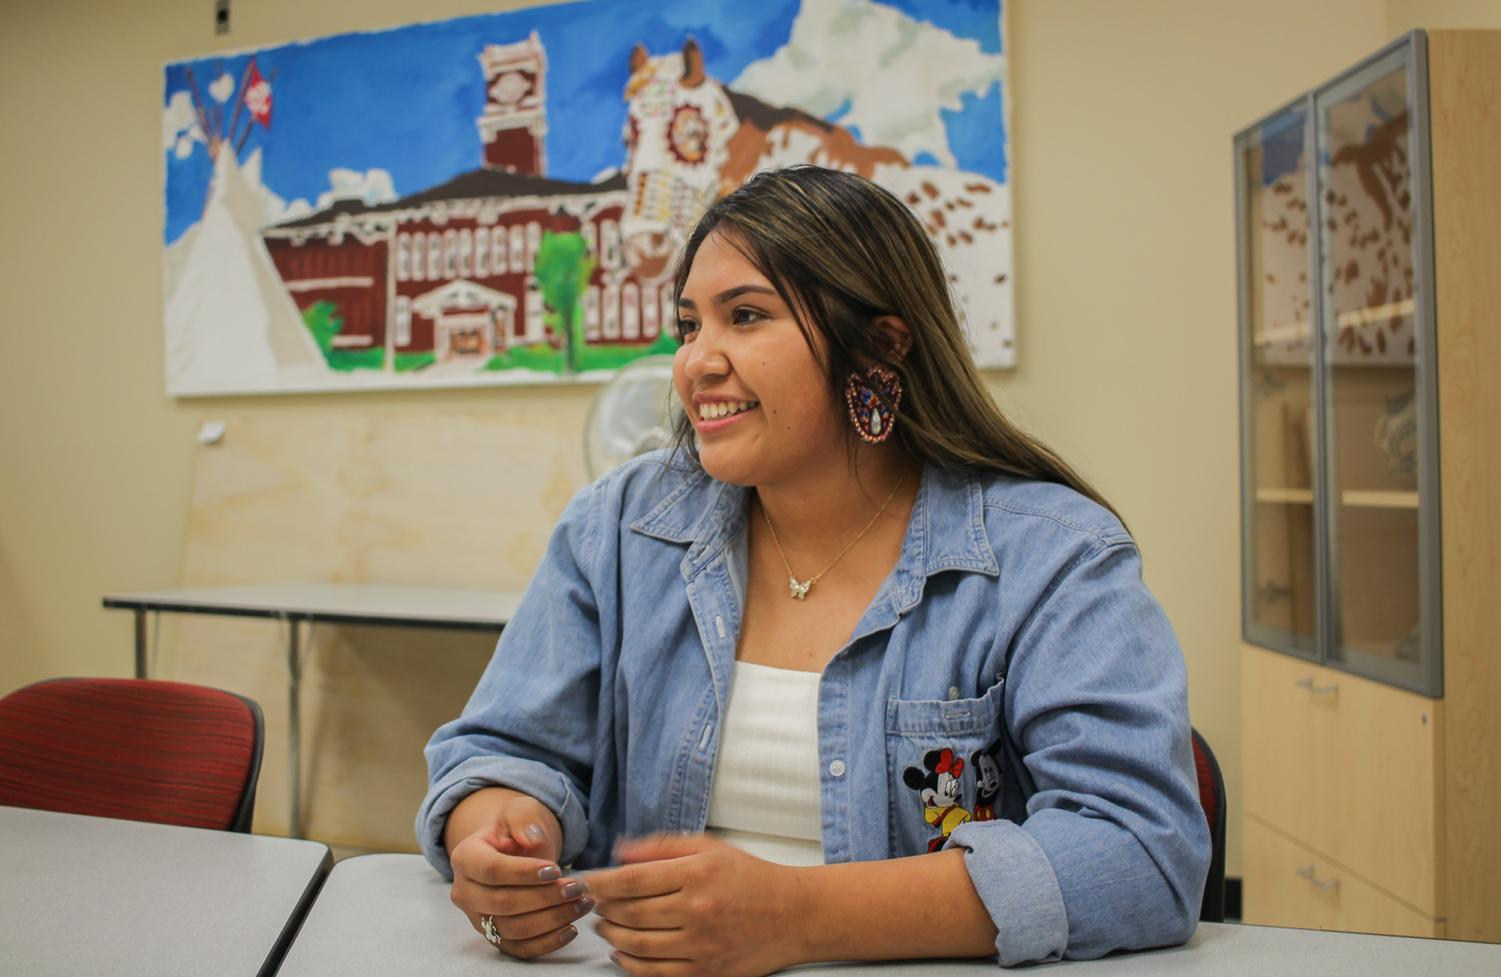 Kyra Antone, senior digital technology and culture major and member of the Cour D'Alene Tohono O'odham tribe, speaks growing native representation on campus Friday at Cleveland Hall.